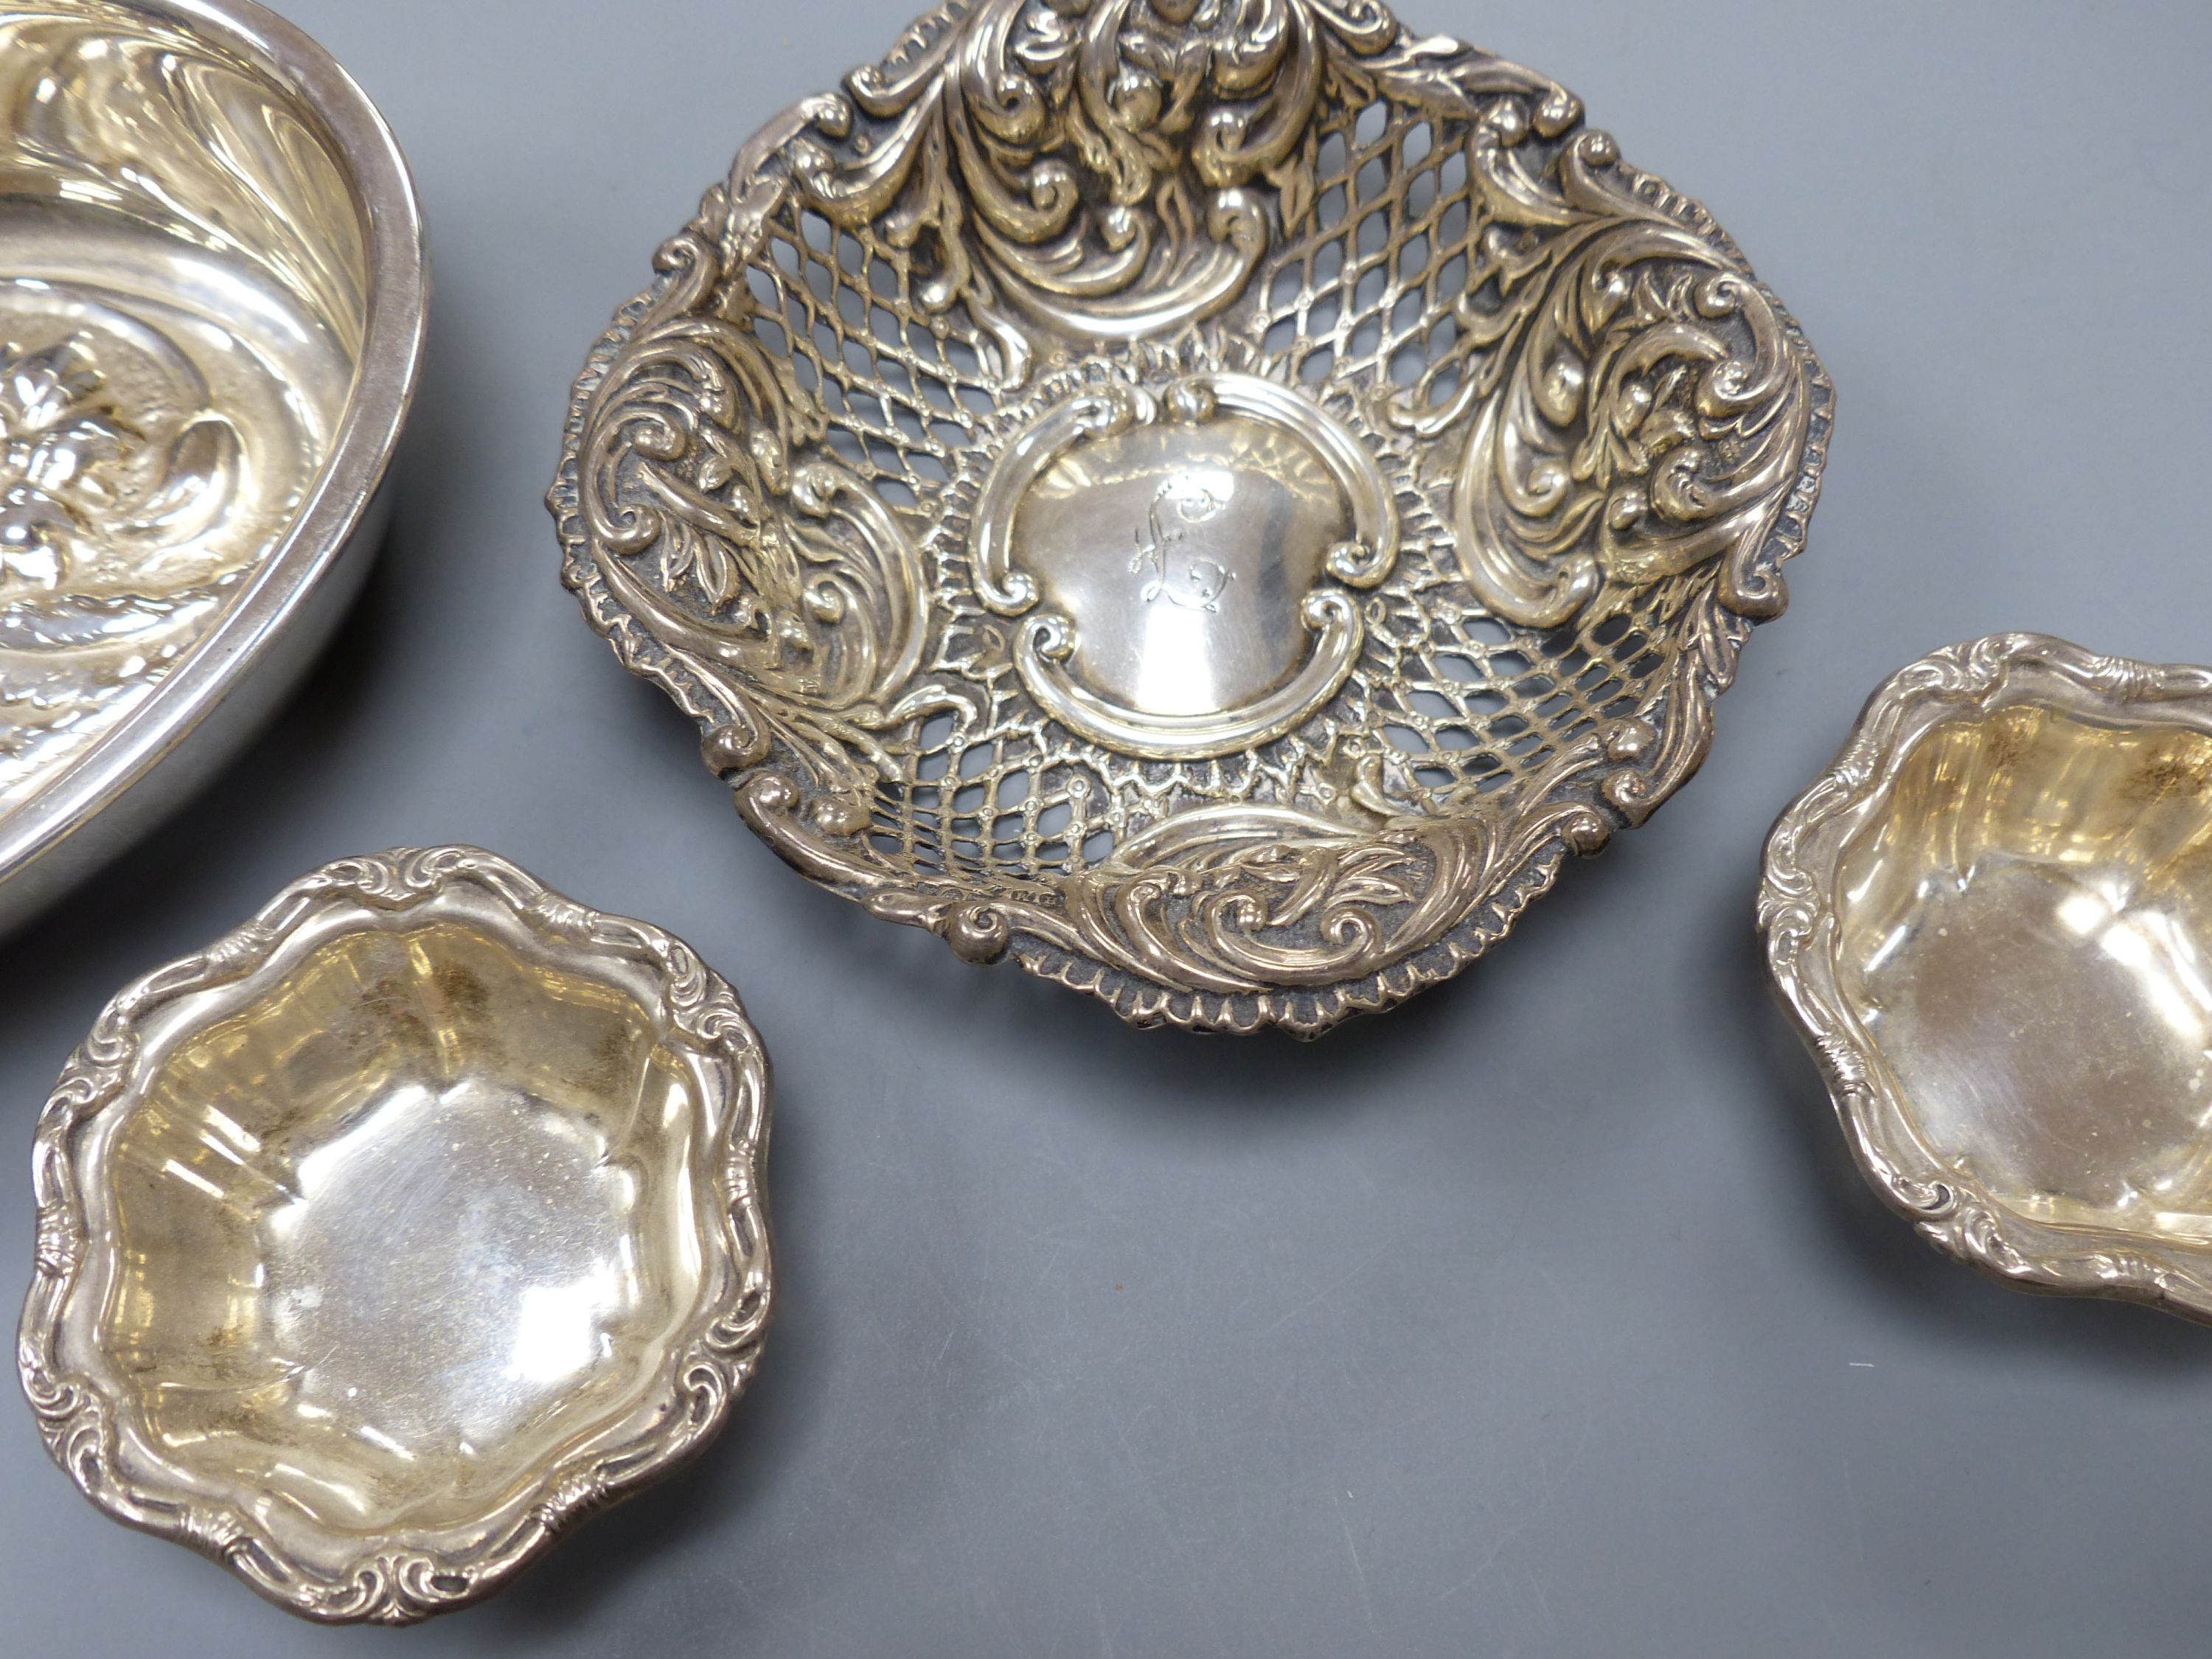 An Italian 8000 standard white metal oval bowl, 15.8cm, two small Birks sterling salts and a - Image 4 of 4